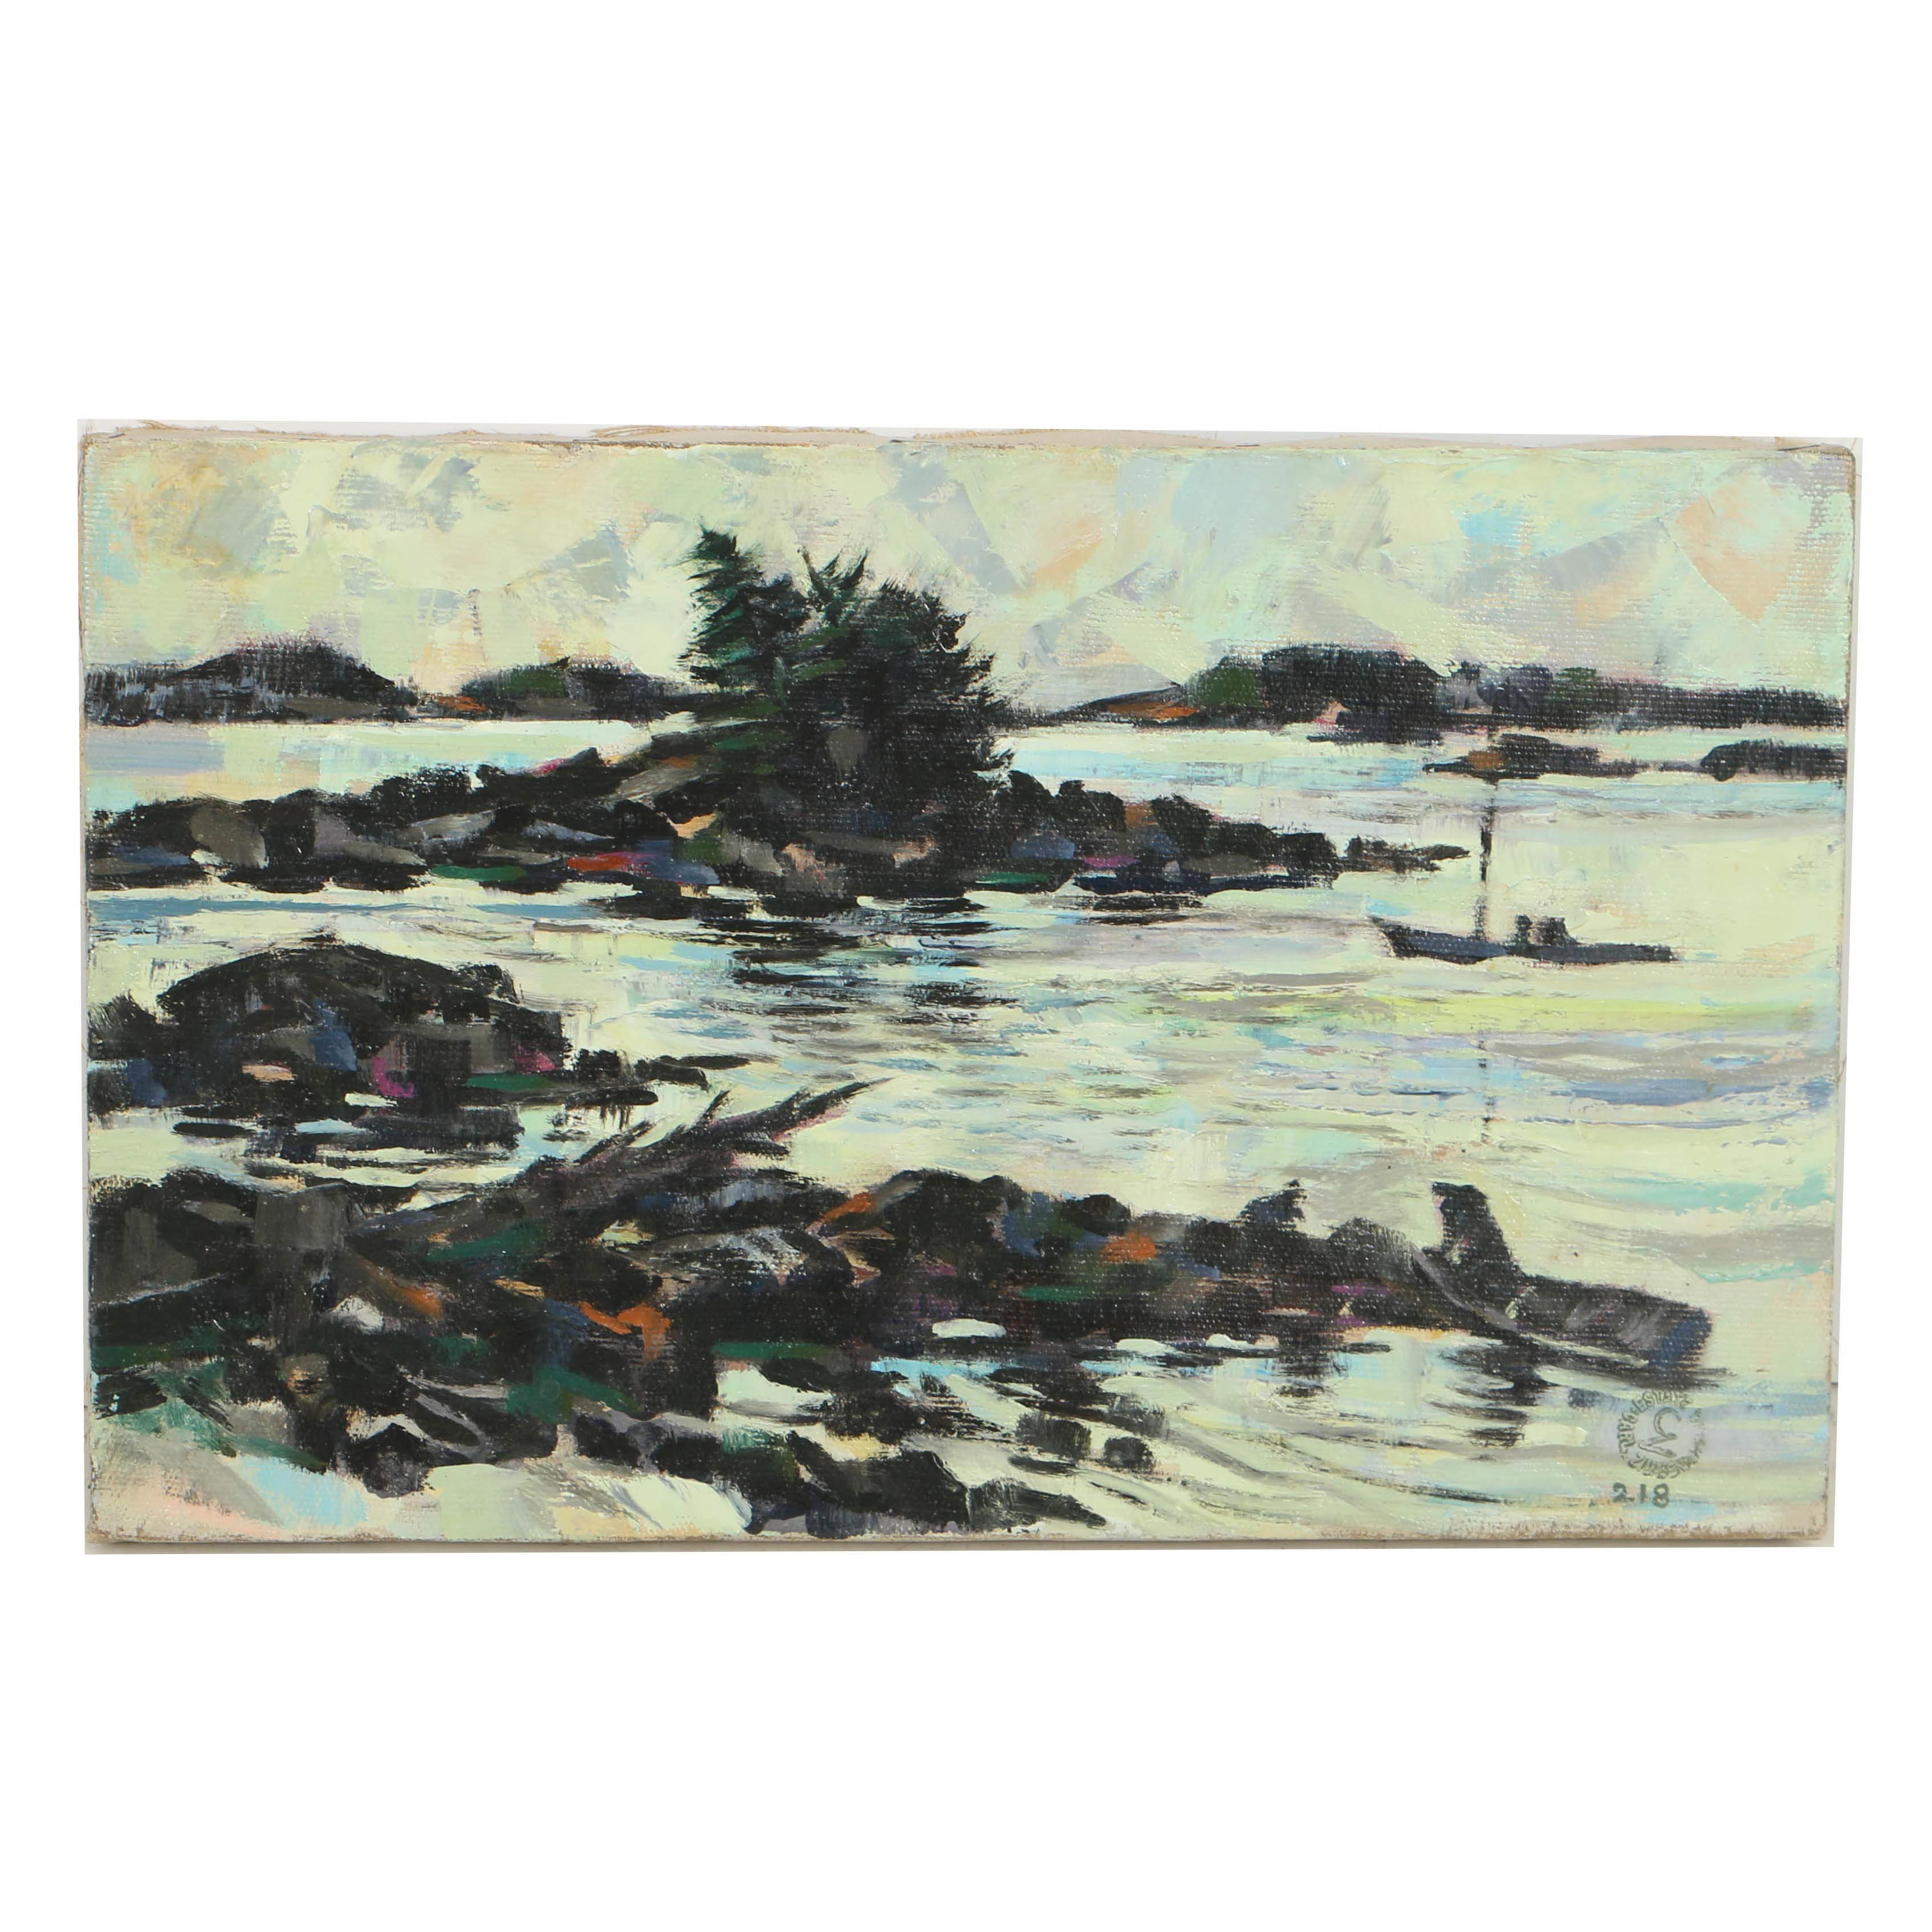 Carl Zimmerman Oil Painting on Canvas River Landscape